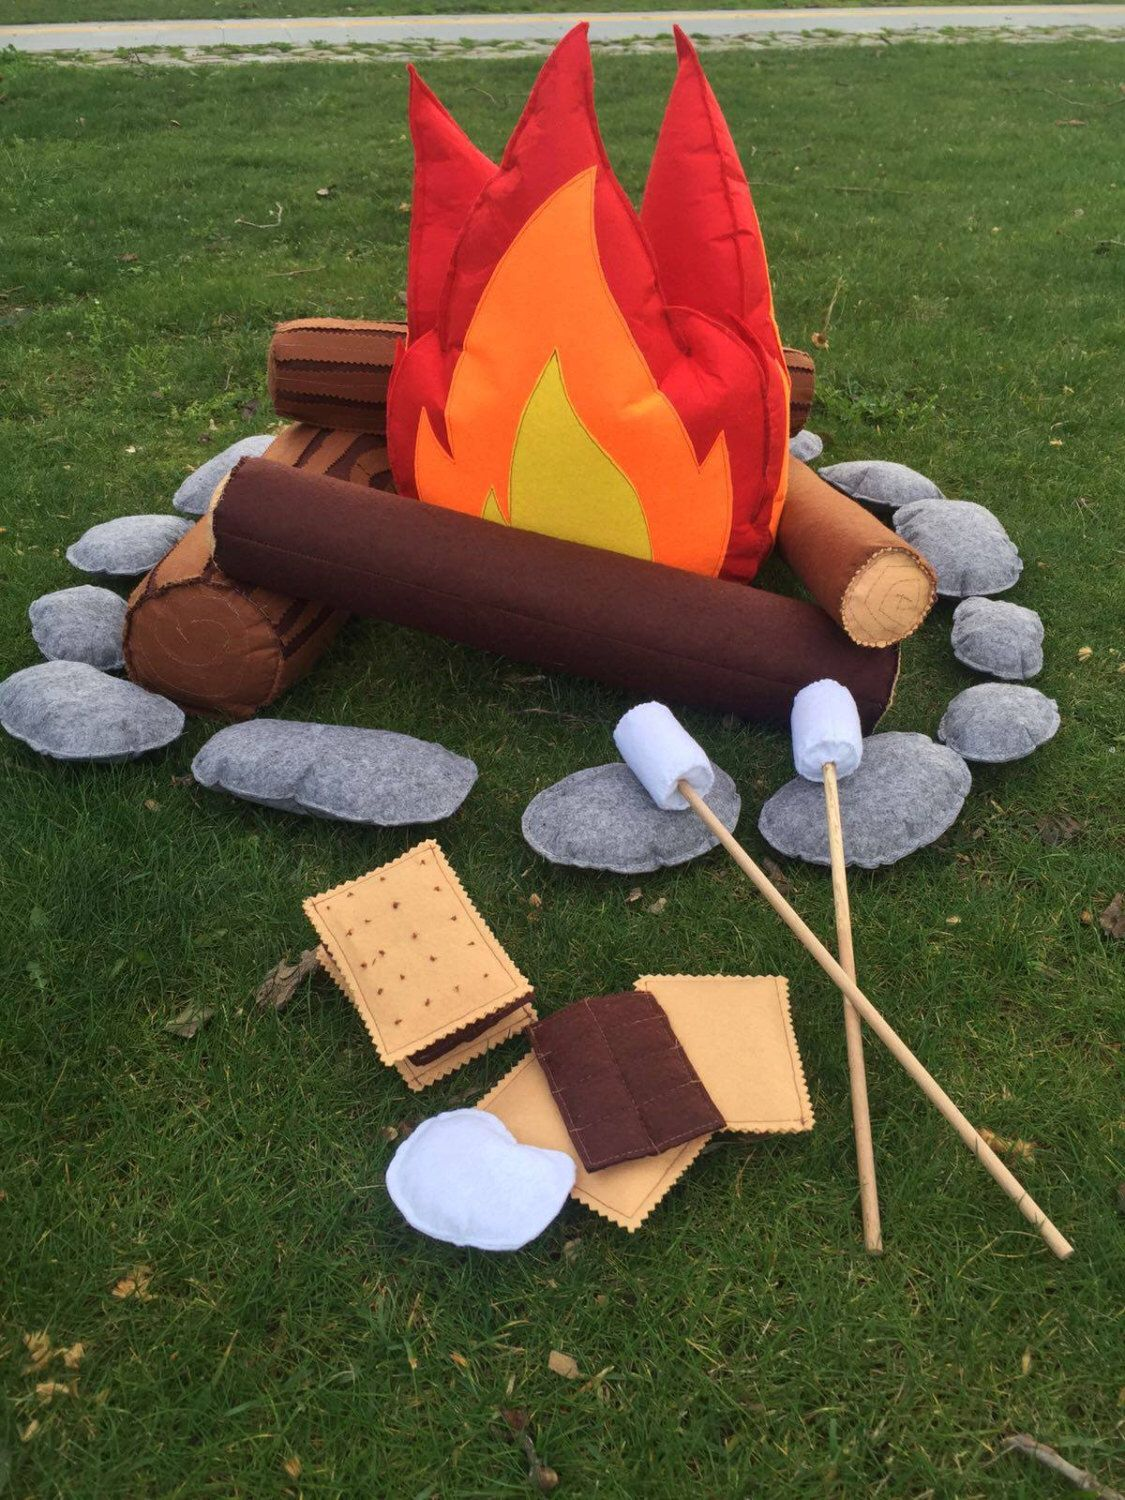 Multicolor Photo Prop Indoor Camping Theme Play Teepee Decor Adventure Home Decor Fire Pillow Nursery Decor Felt Campfire Plush Toy for Kids,Felt Plush Party Decorative Flame Torch